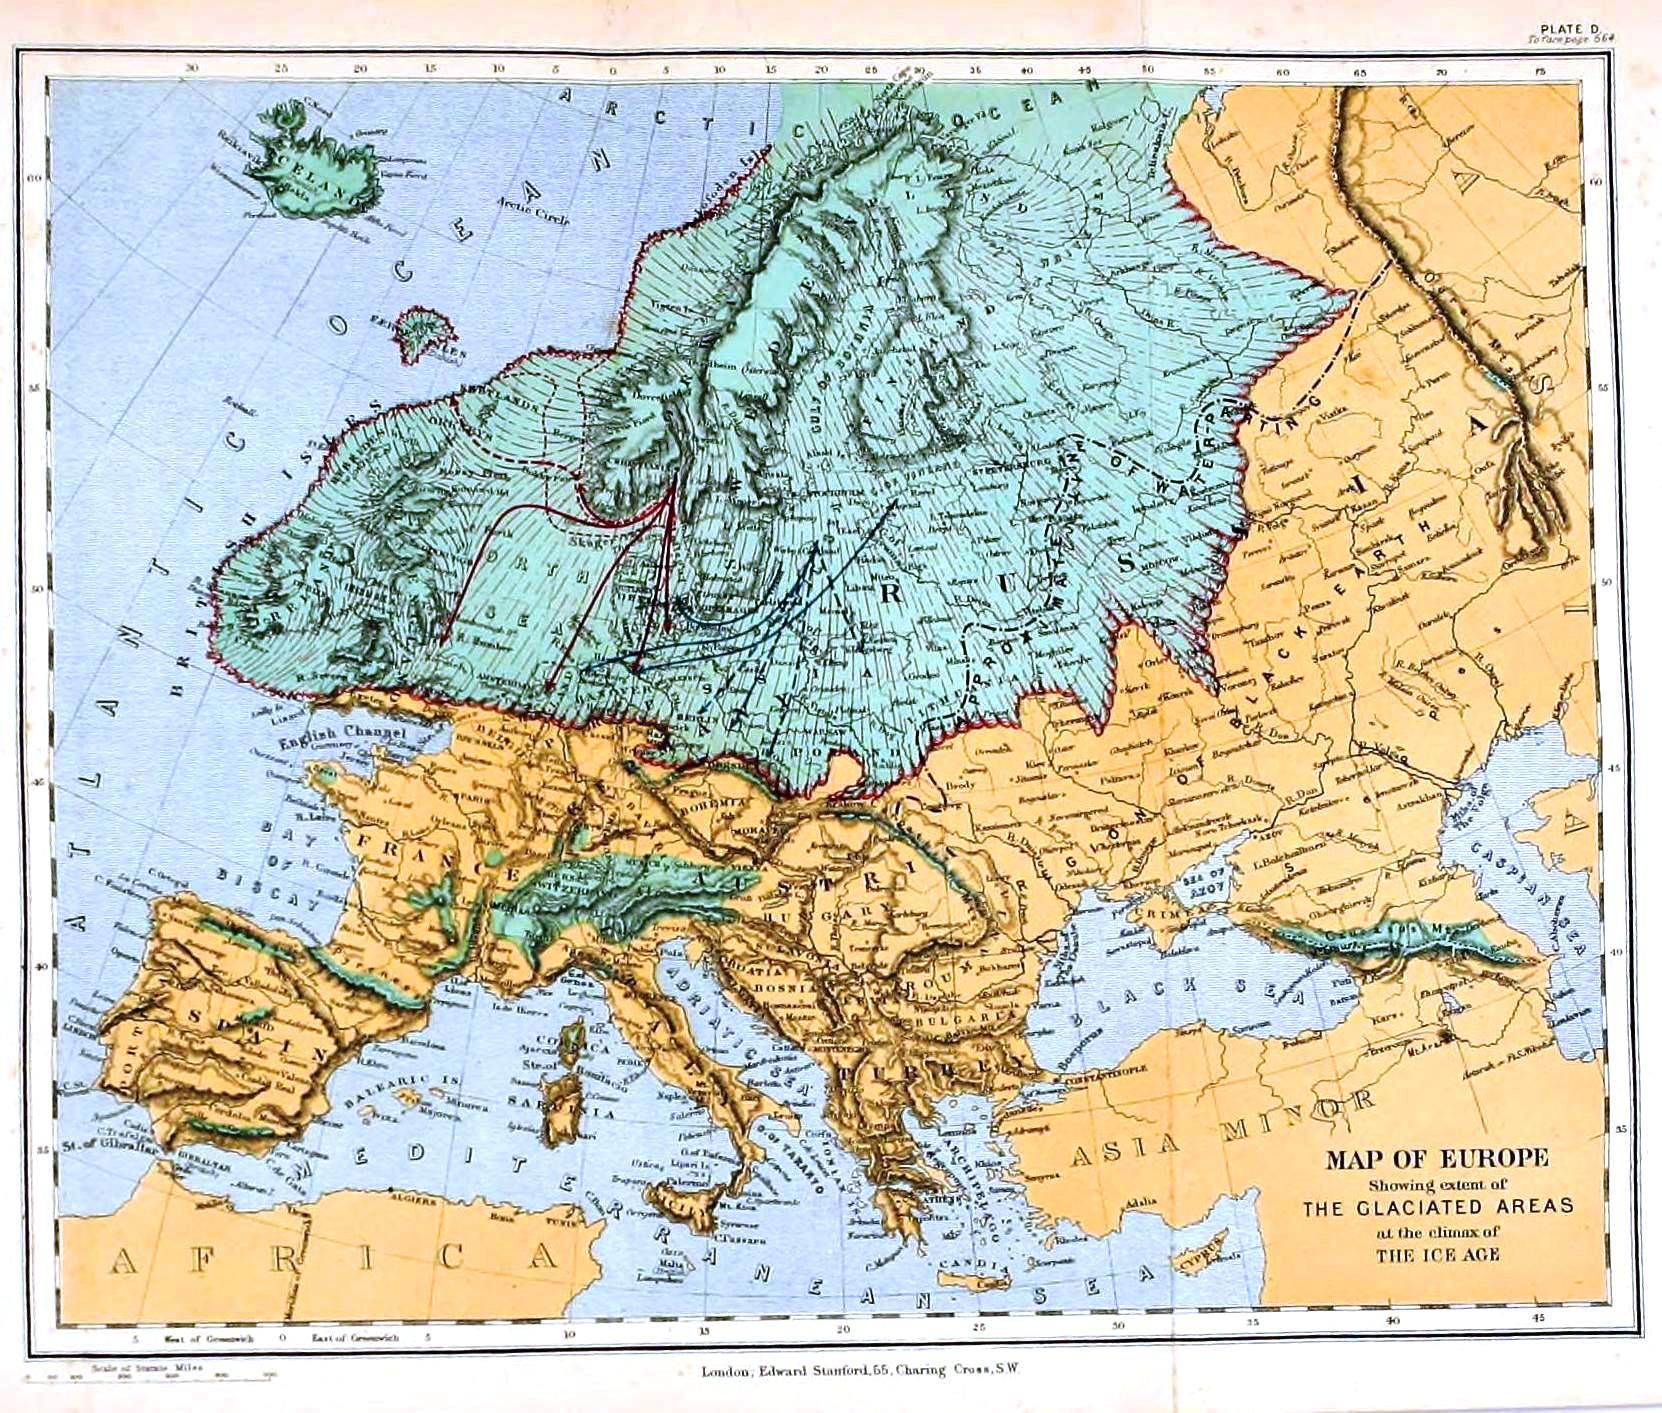 map of europe during ice age map of Europe during the Ice Age | Map, Historical maps, Ancient maps